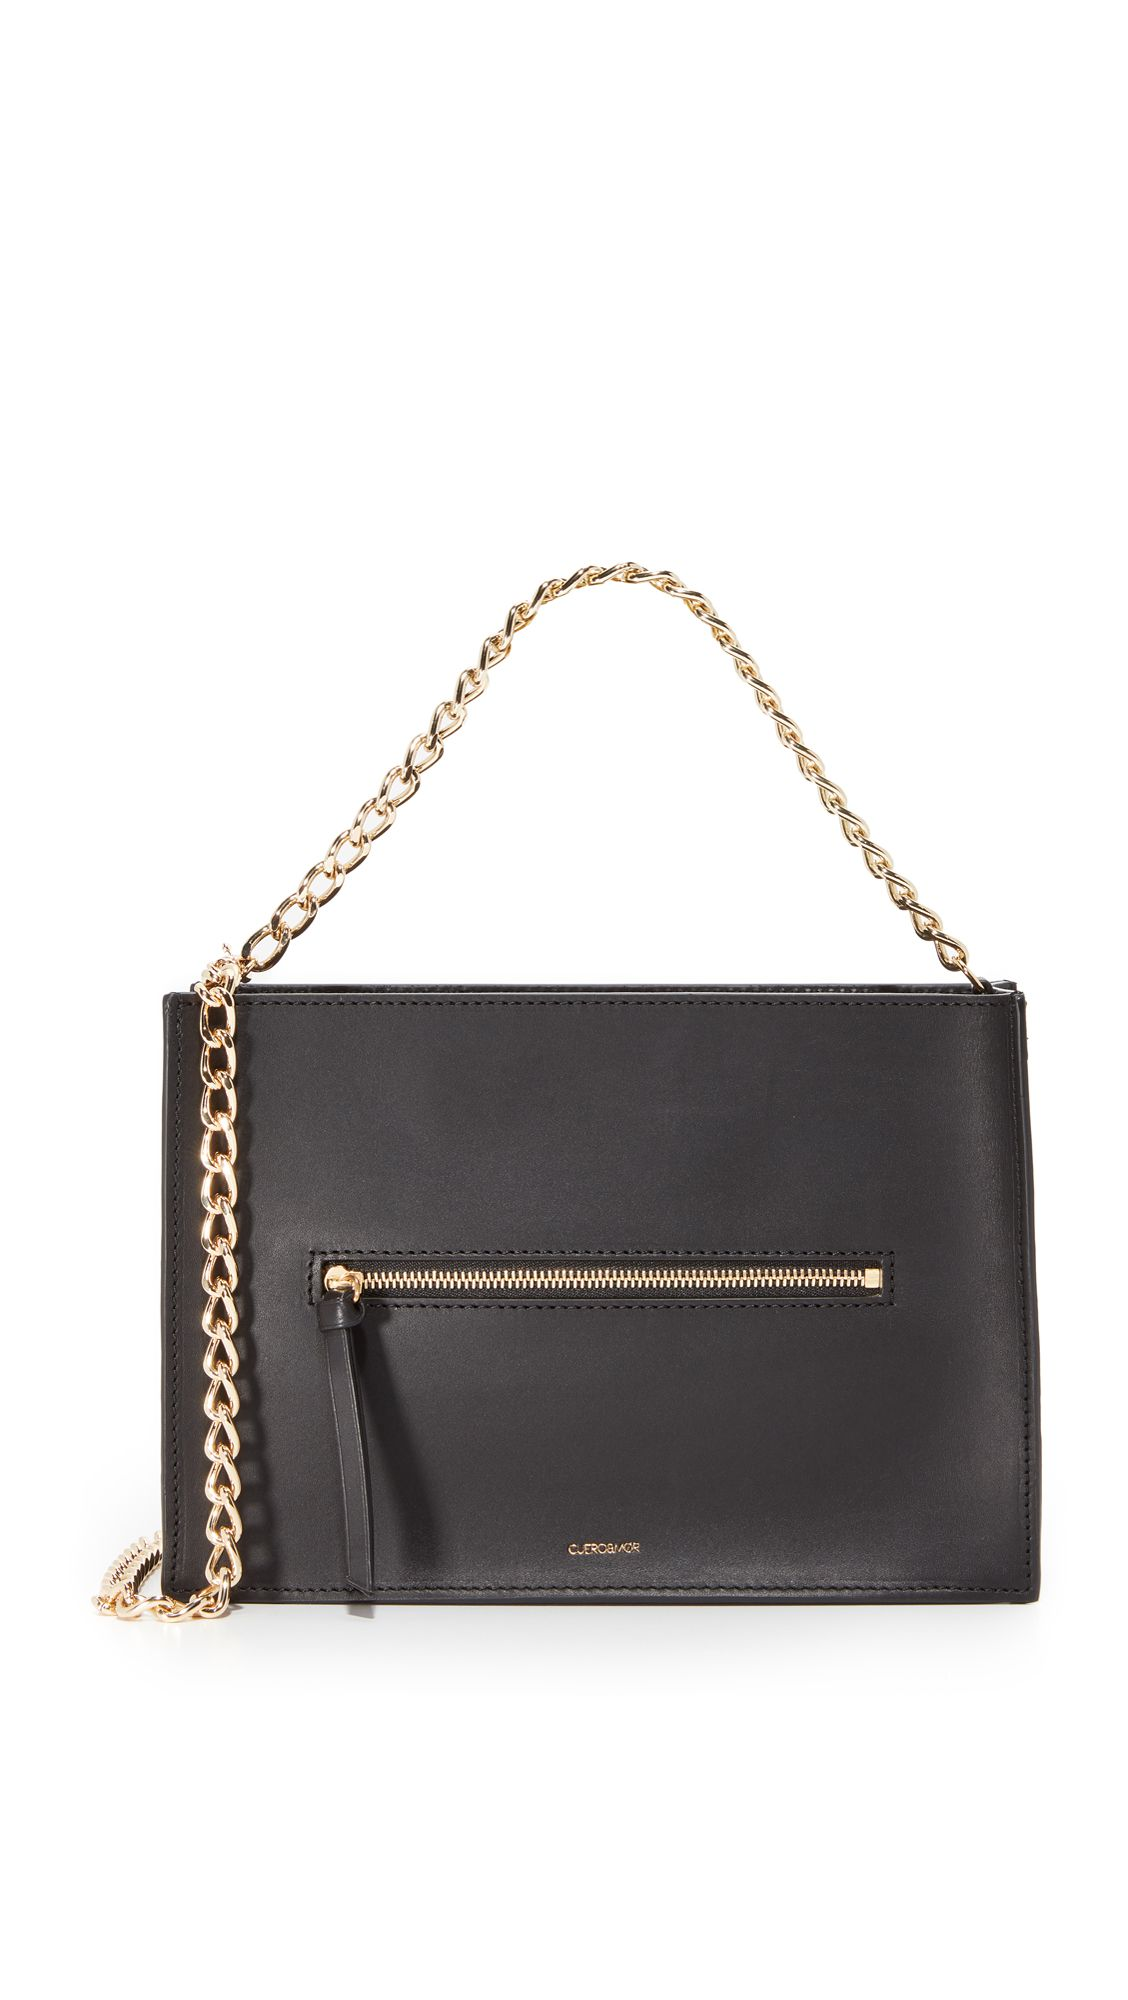 A black leather bag with a gold chain